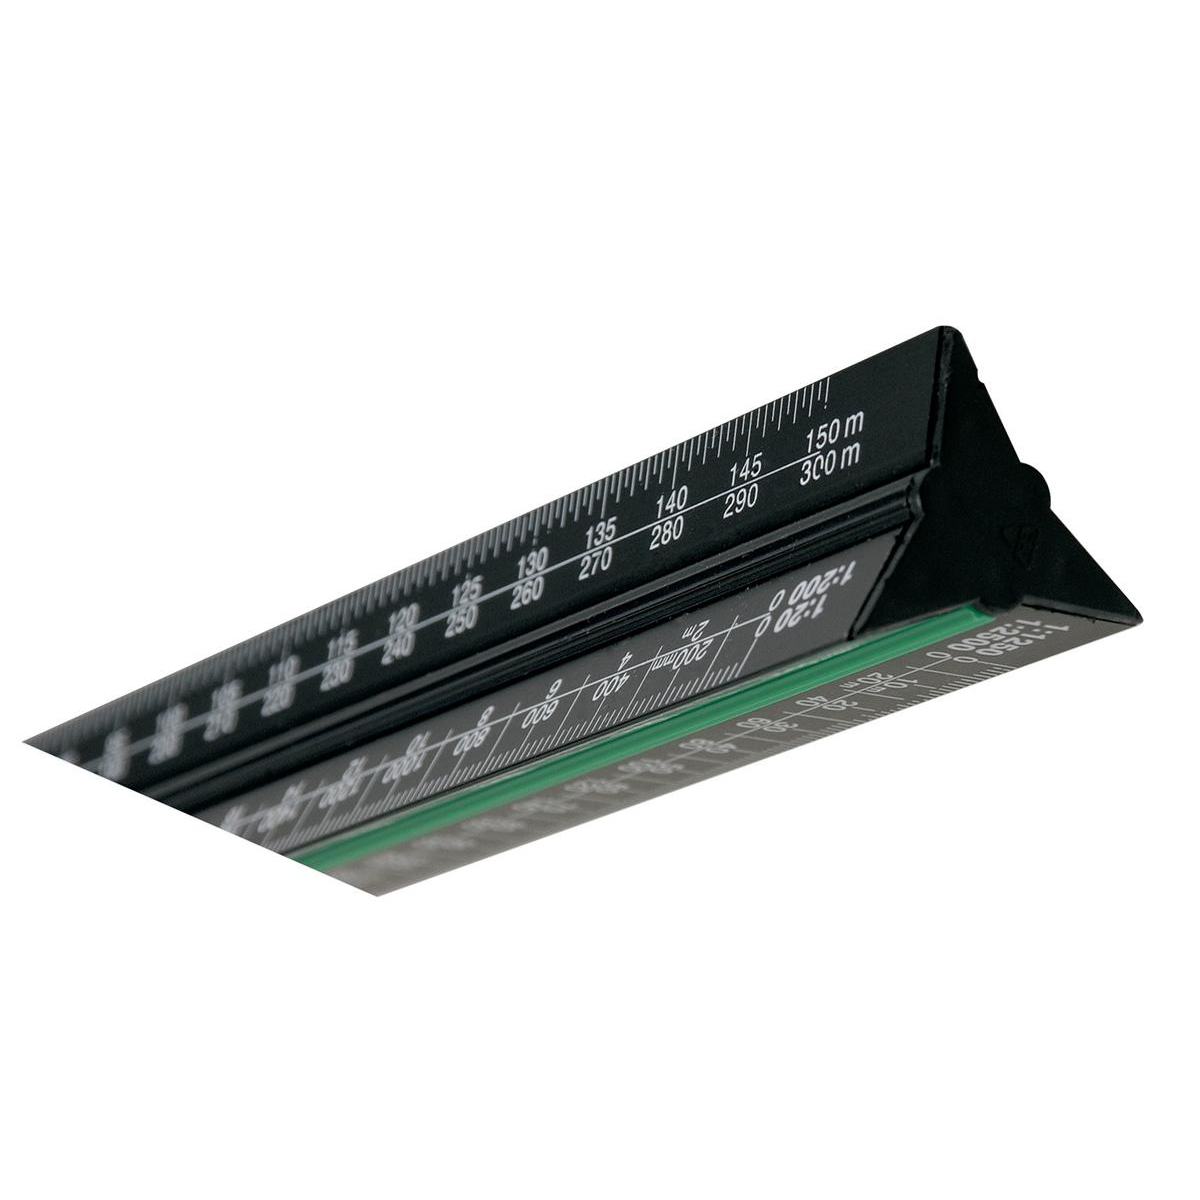 Linex Scale Ruler Triangular Aluminium Colour-coded Scales 1:1 to 1:2500 300mm Black Ref LXH382